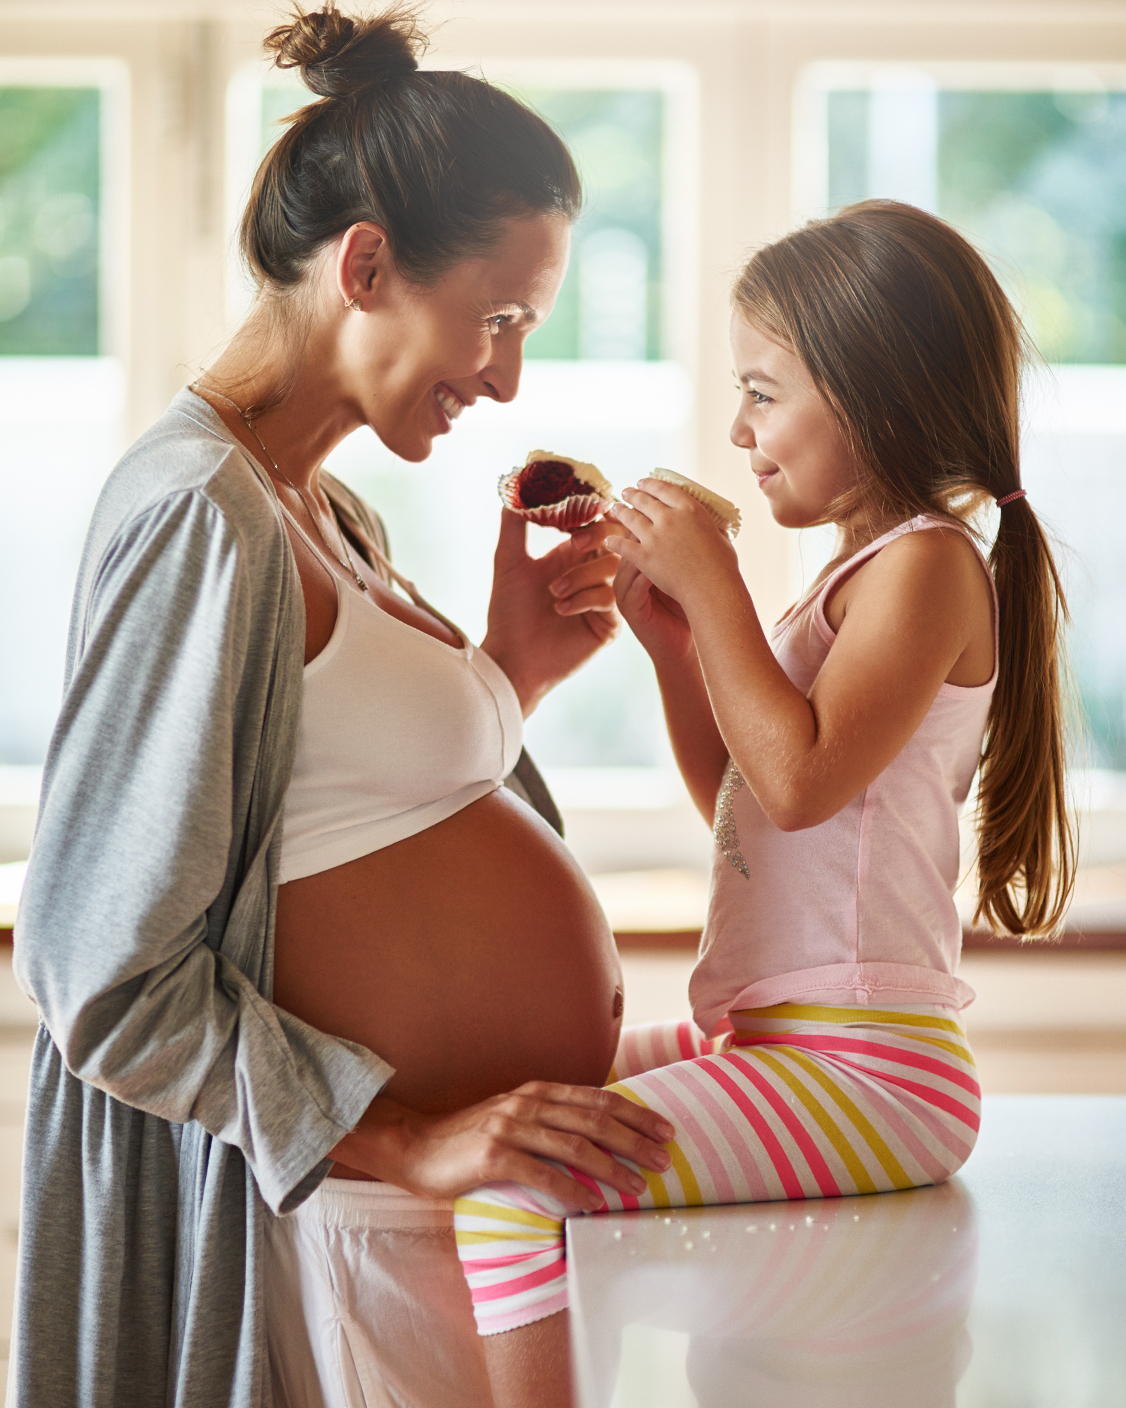 5 Healthy Habits Every Mom Desires For Her Kids(That She Needs, Too!) - Raising children doesn't have to be complicated. As mothers, we want to do our best to help our children create a healthy relationship with food and their bodies.Learn five meaningful habits you can help your children develop that are equally important to you too, mama!We can put an end to the food shaming and poor body image and set your children on the right path to a lifetime of well-being. Feel confident that you are modeling healthy habits that will benefit your children throughout their lives.